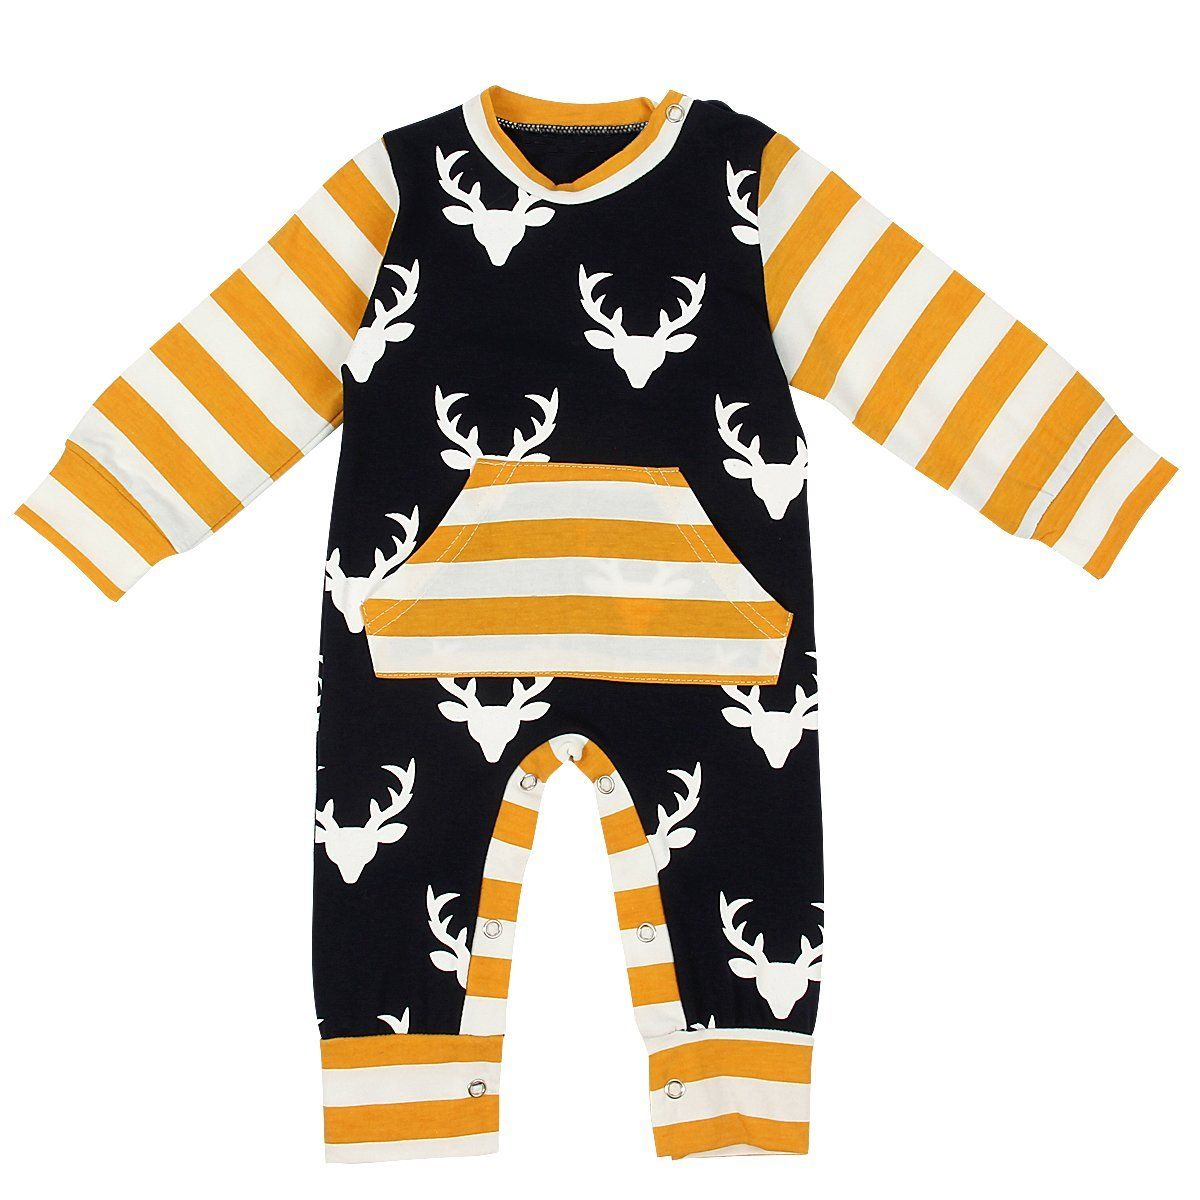 Autumn Newborn Kids Baby Boy Girl Warm Infant Long Sleeve Deer Striped Romper Cotton Jumpsuit Clothes Outfit newborn infant baby boy girl cotton romper jumpsuit boys girl angel wings long sleeve rompers white gray autumn clothes outfit